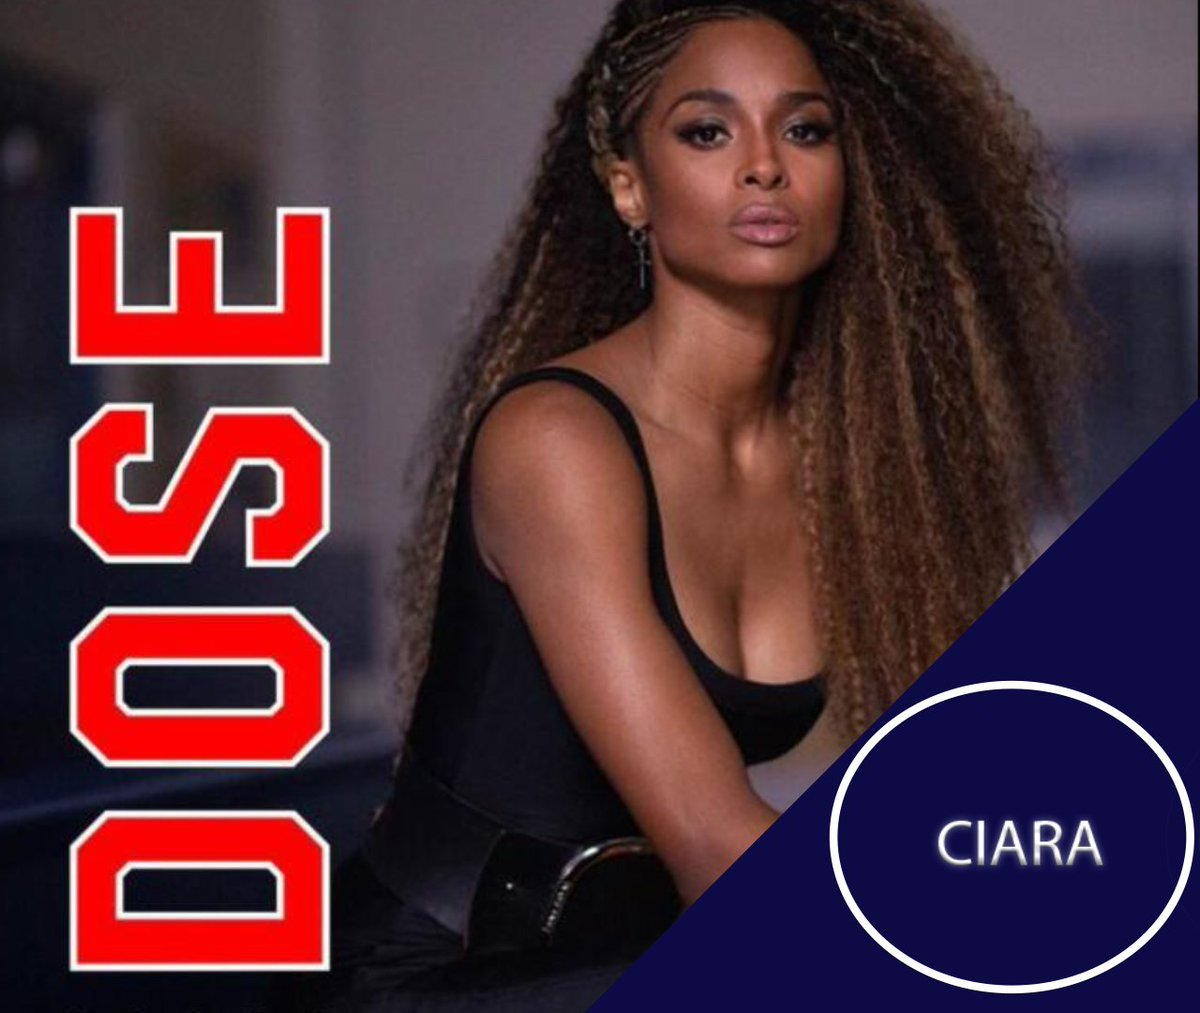 RT @ESPNMusic: get your #Dose of highlights @SportsCenter and check out @ciara all month! https://t.co/1BuQI2j9bw